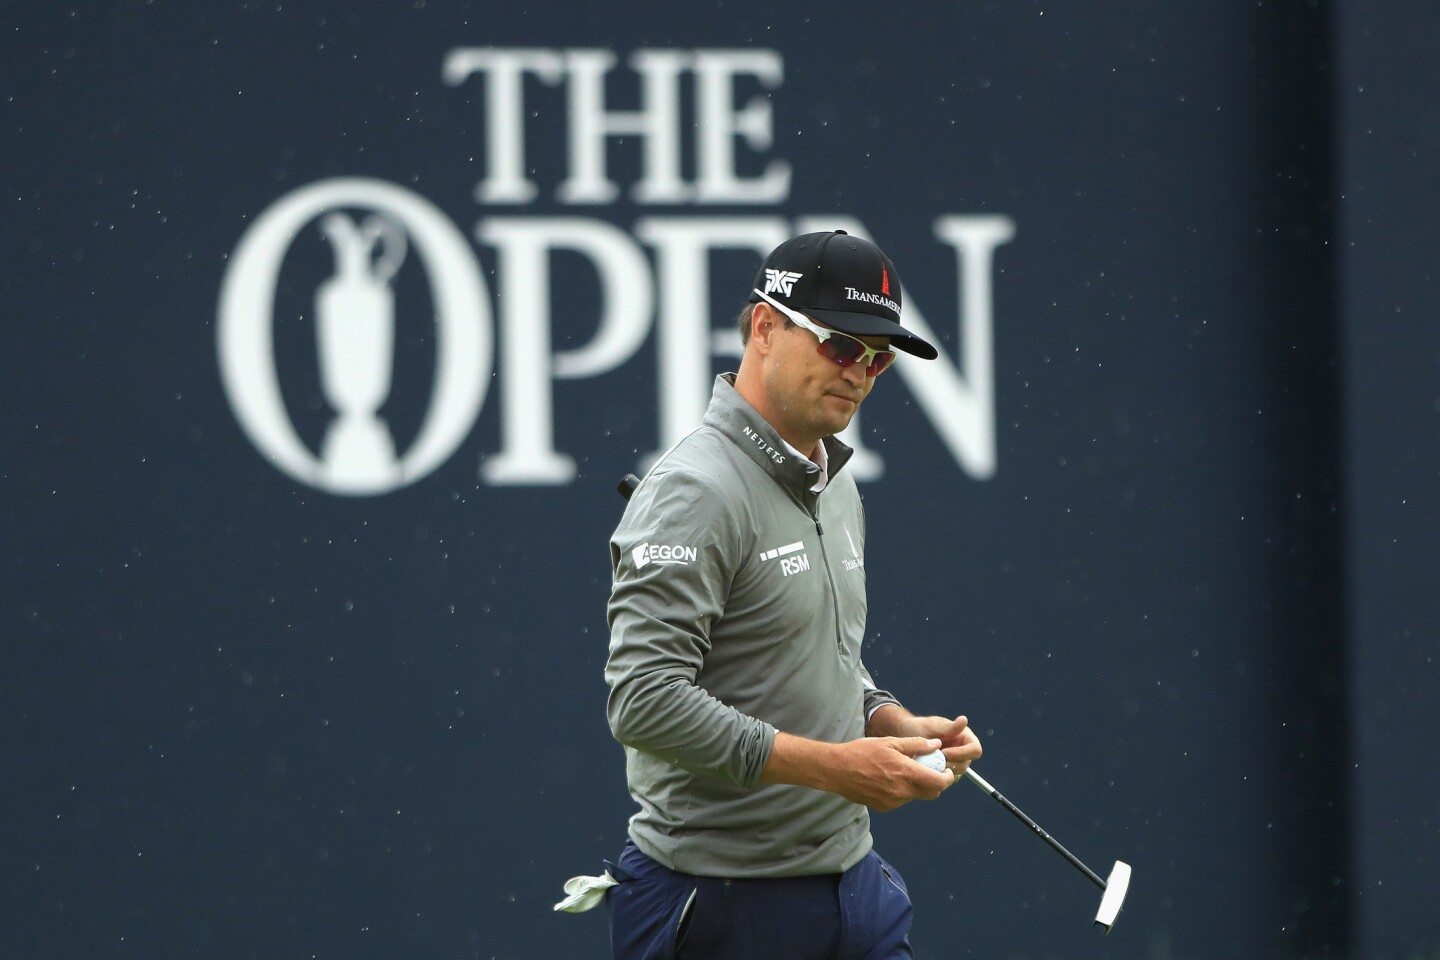 Zach Johnson of the United States celebrates a birdie on the 18th hole Friday in the second round of the British Open.